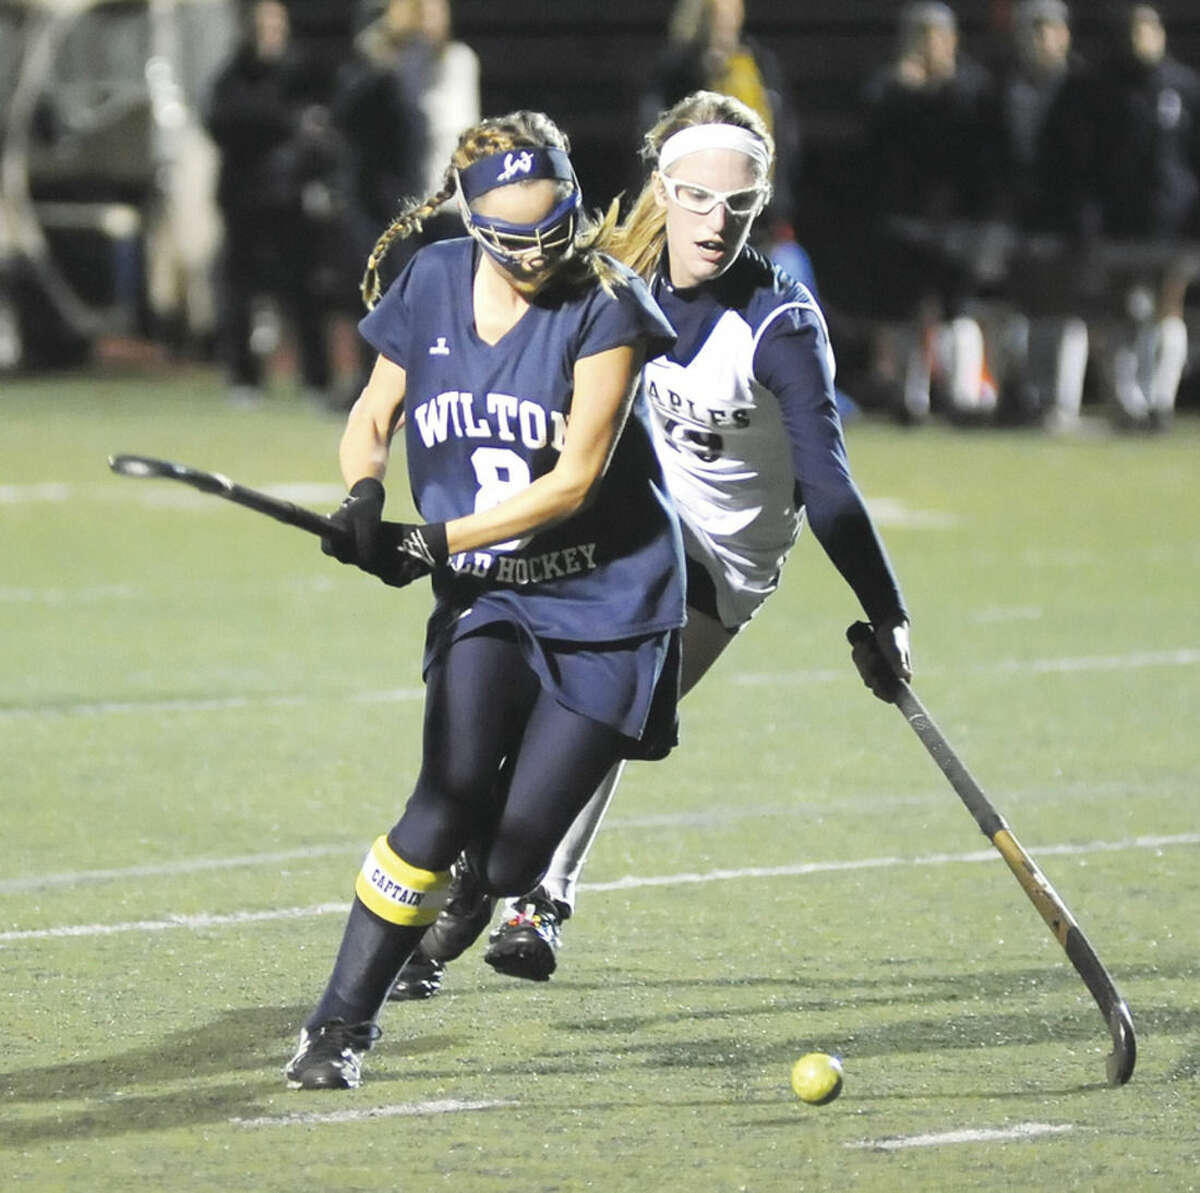 Hour photo/John Nash Wilton's Kristen Godin, front, pulls back her stick before driving the ball into the cage for a goal during her team's 6-0 win over Staples on Monday night in Westport. Behind Godin, Staples' Elizabeth Bennewitz tries to defend.